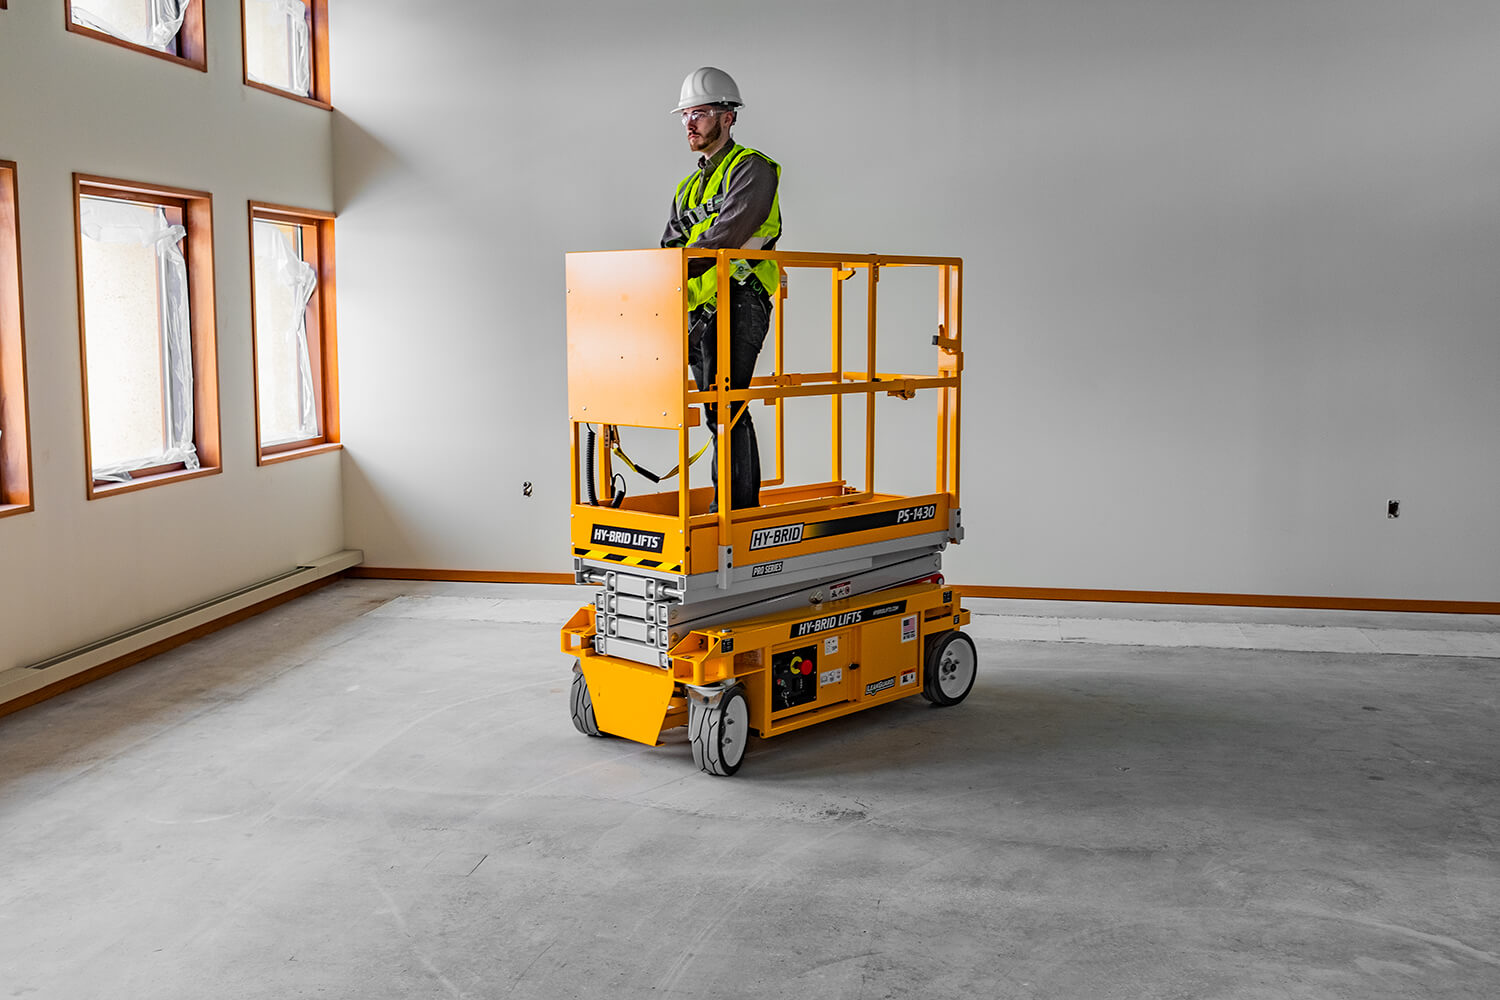 Hy-Brid PS-1430 Mobile Elevating Work Platform